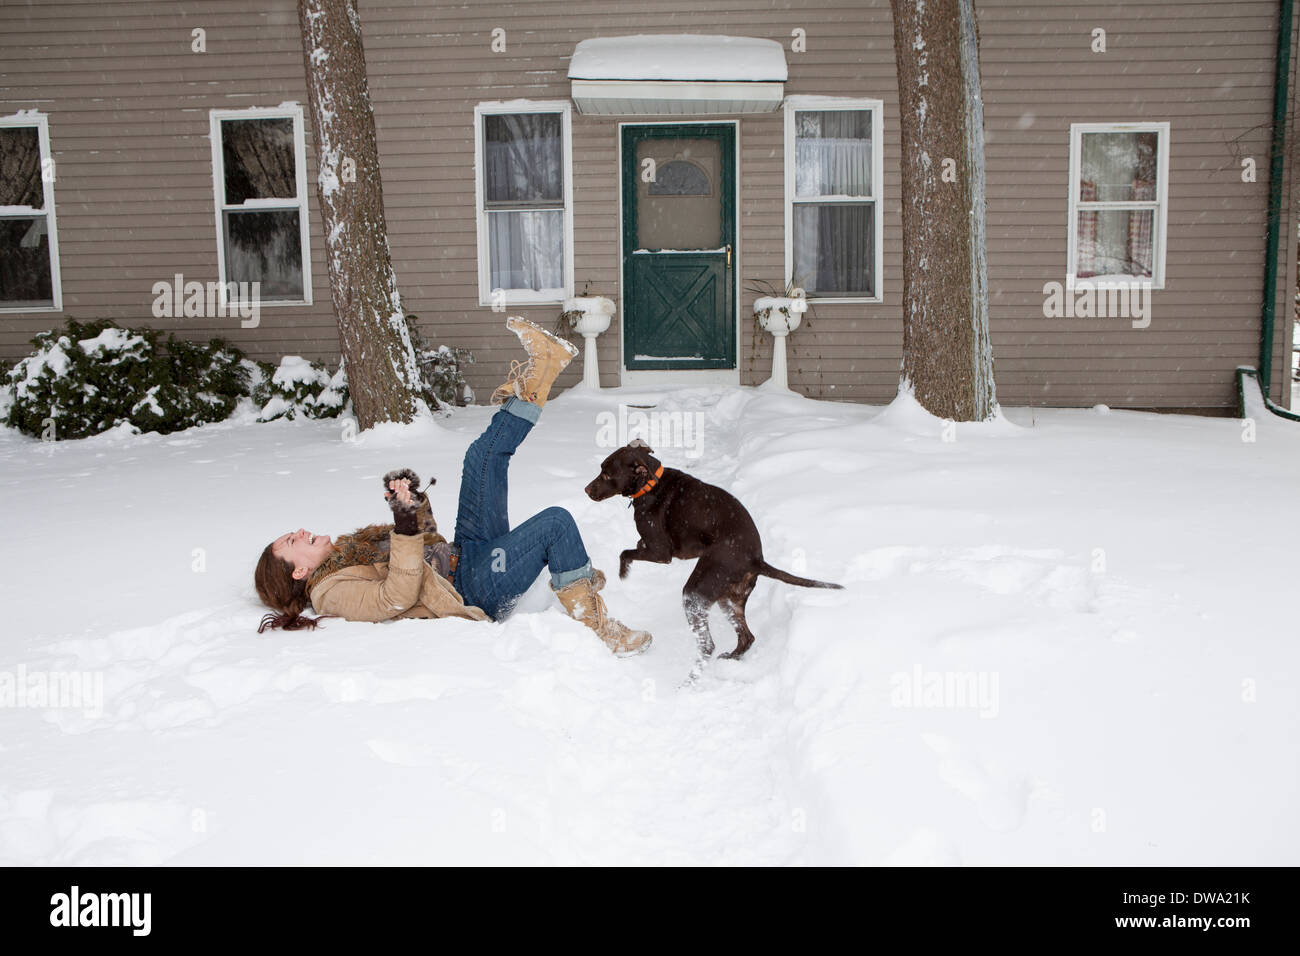 Mid adult woman lying in snow outside house playing with dog - Stock Image